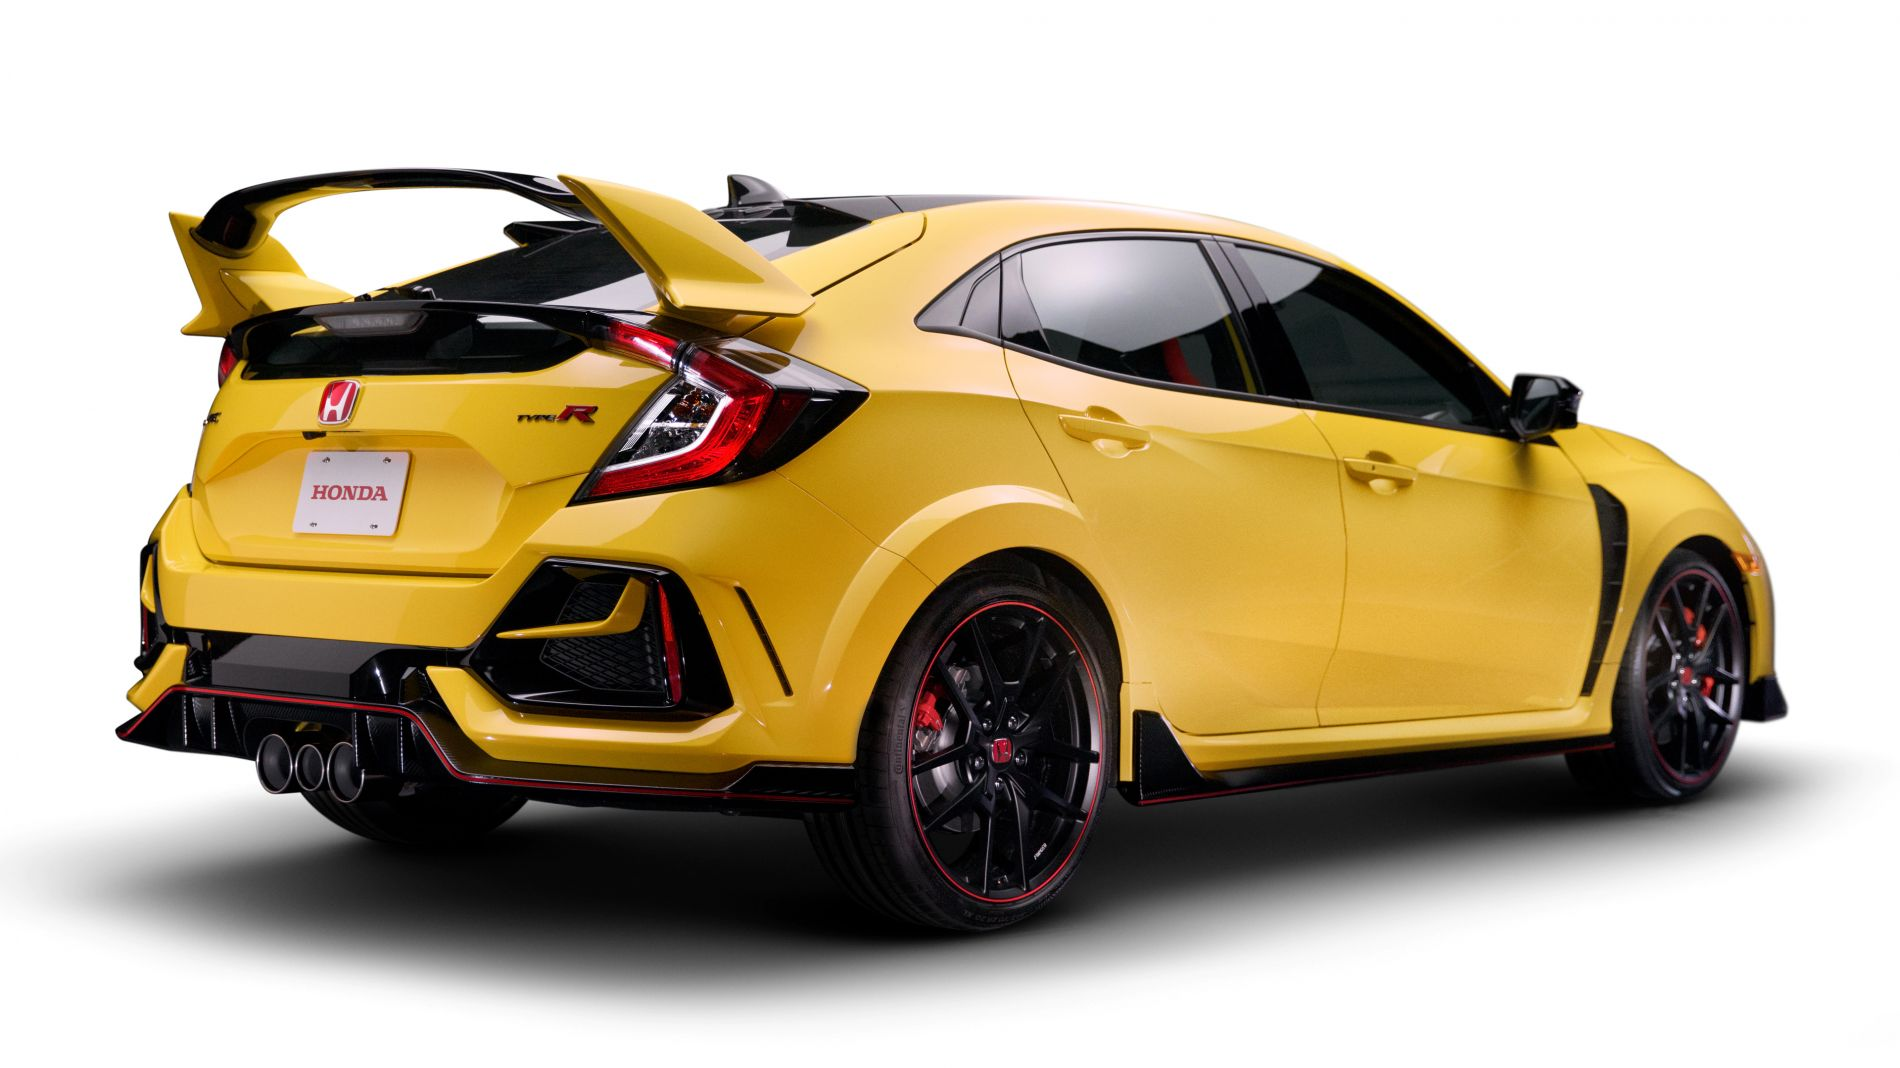 2021 Honda Civic Type R -  Limited Edition